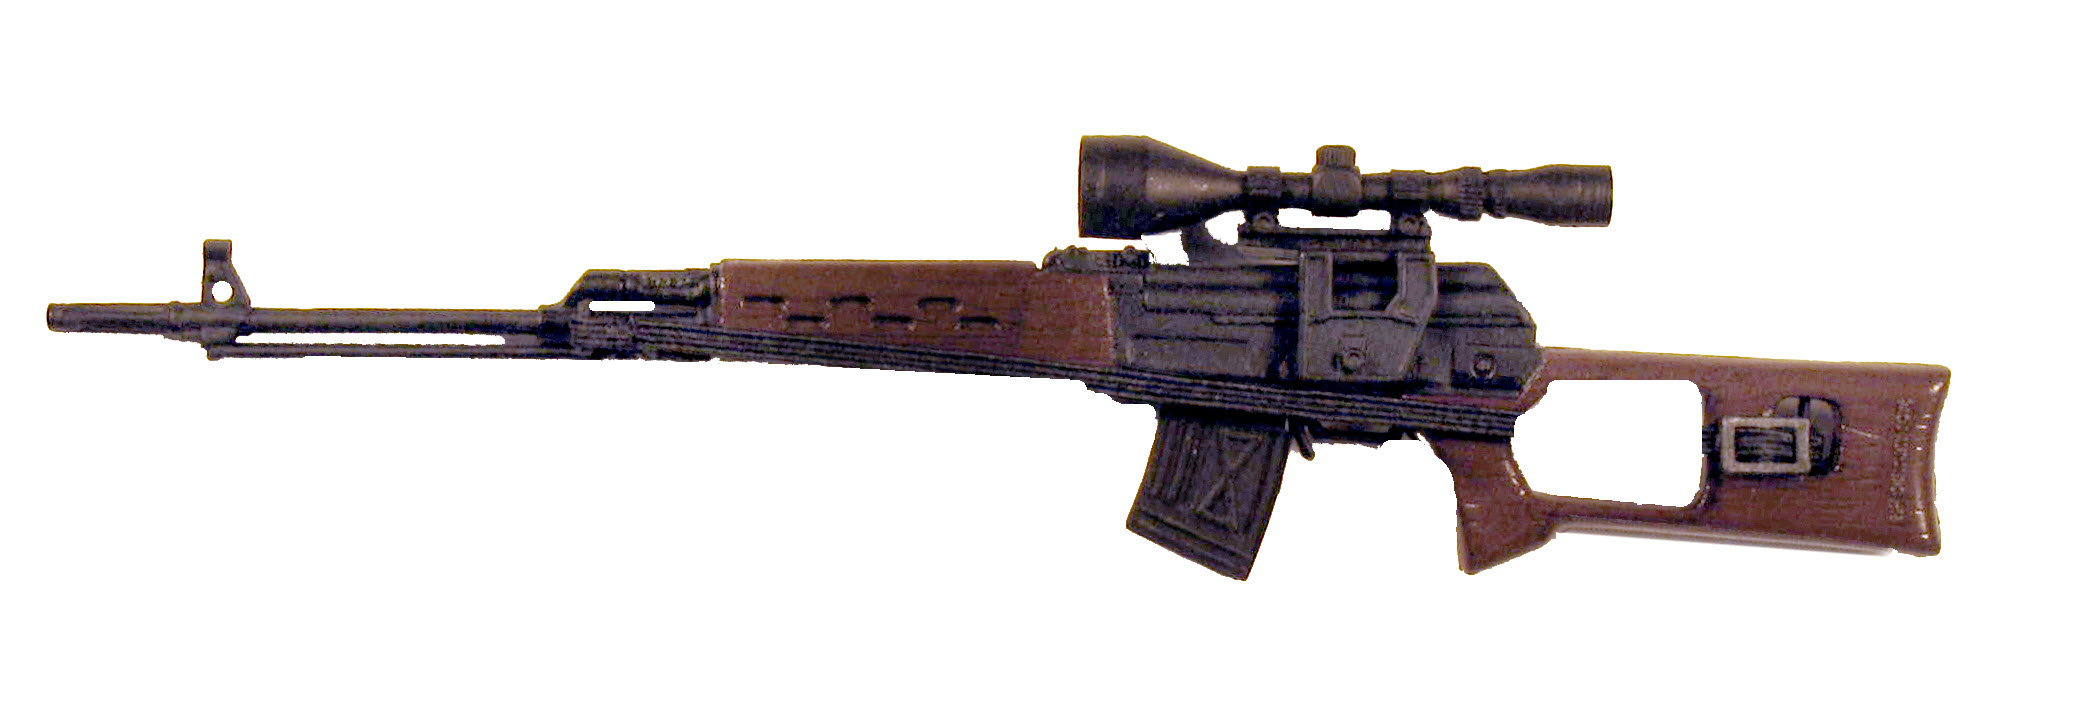 Russian Dragunov Sniper (short barrel) - Click Image to Close